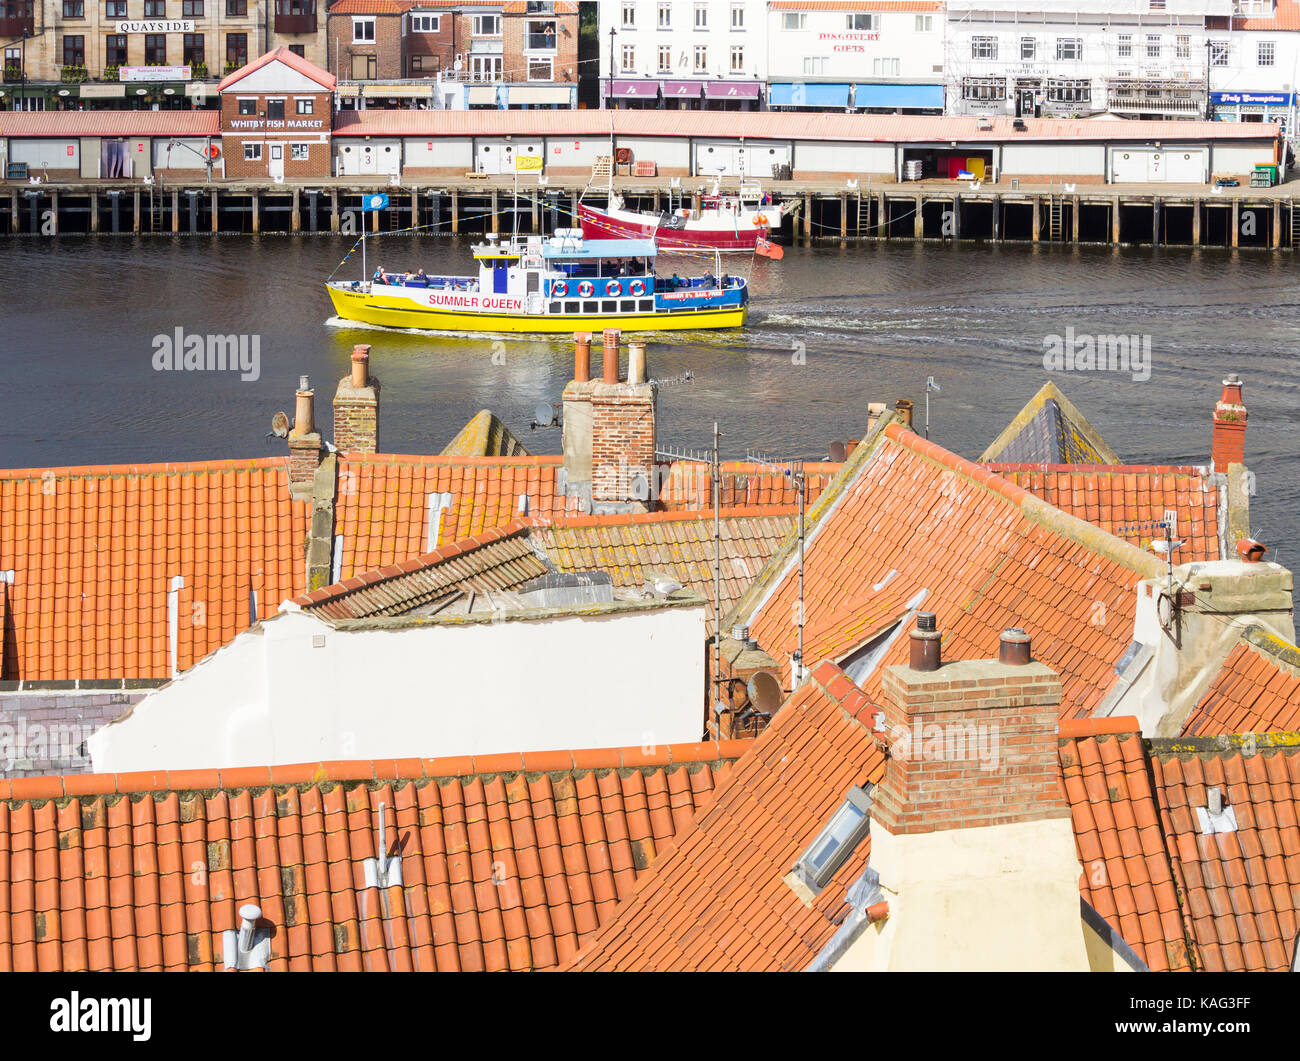 Whitby, North Yorkshire. UK. View over rooftops from 199 steps to one of the many boats that take tourists on short - Stock Image